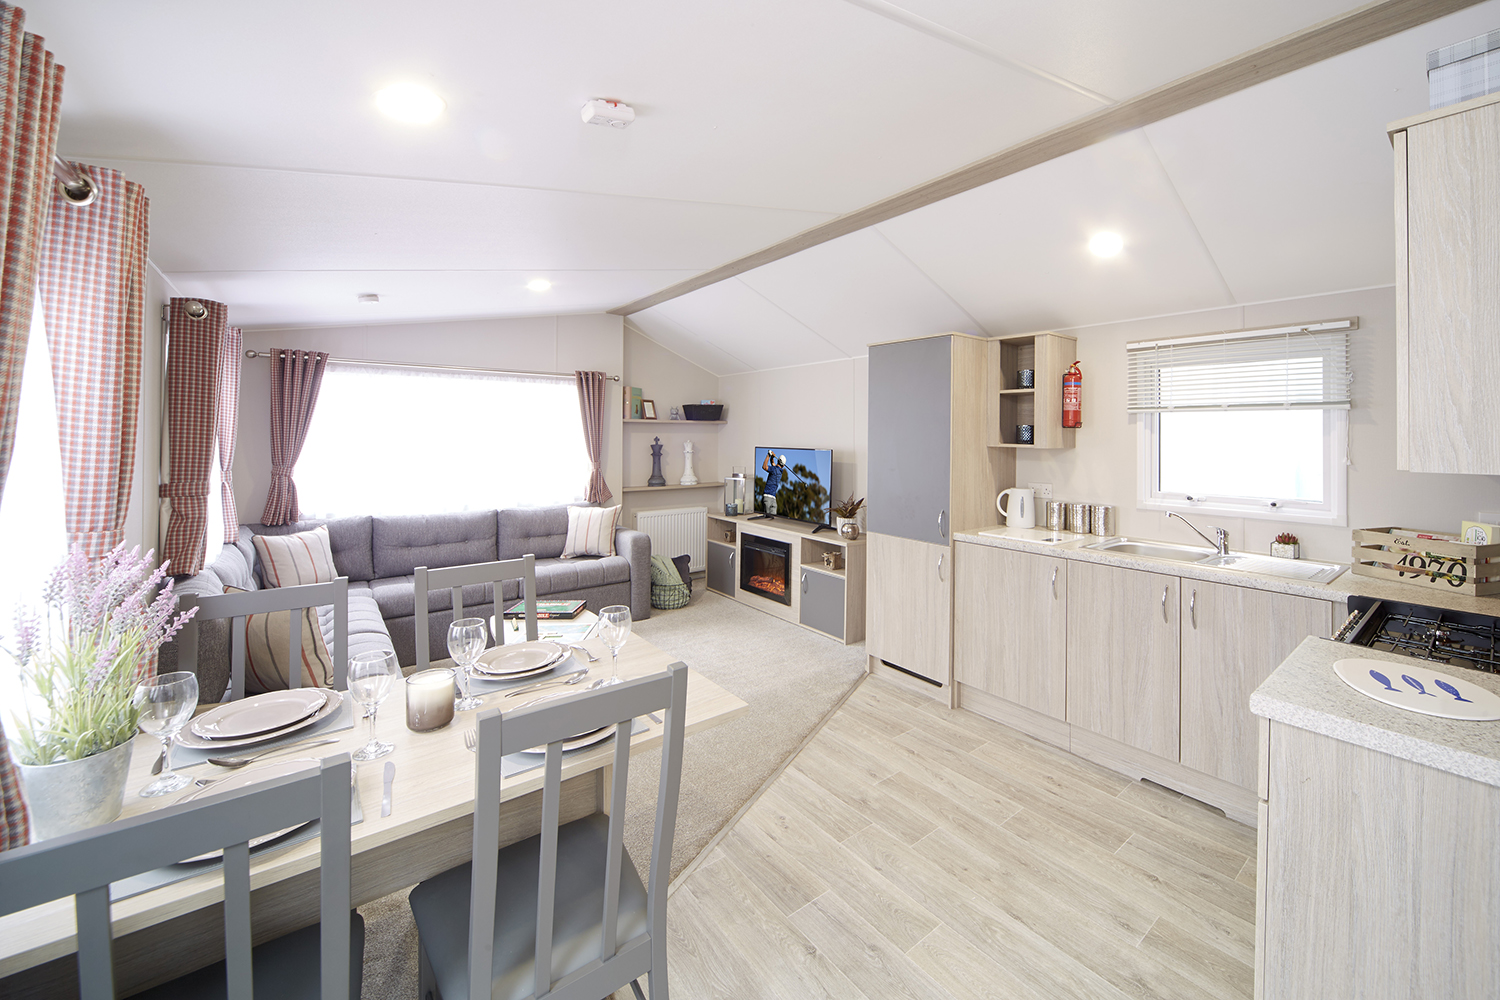 Jurassic Coast Caravans for Sale